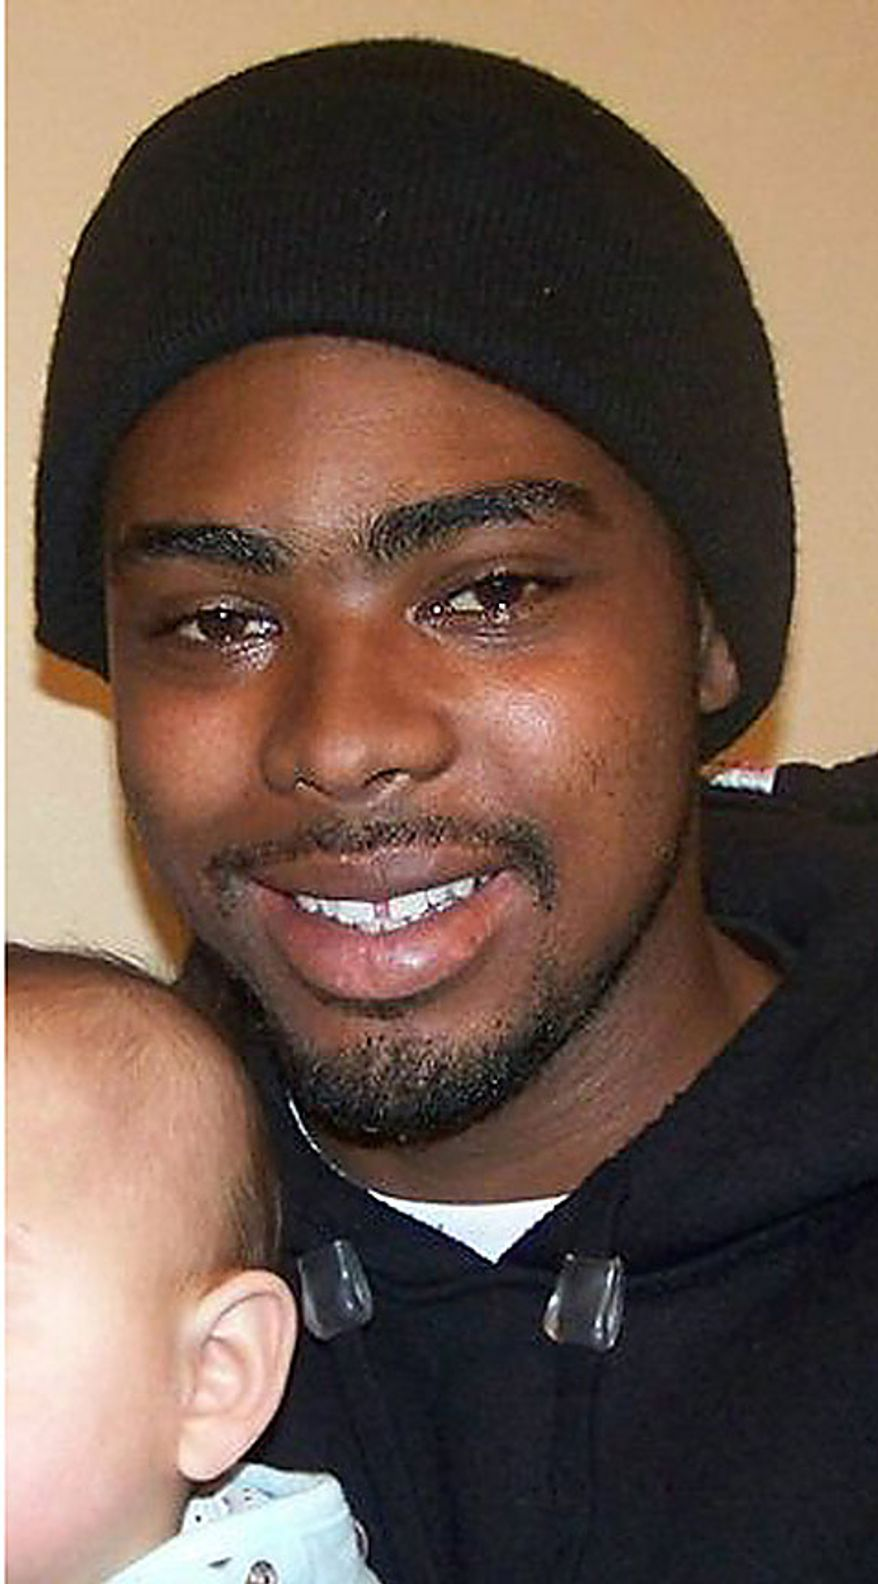 This undated family photo provided by the Law Offices of John Burris shows Oscar Grant, a 22-year-old transit rider who was shot and killed by Bay Area Rapid Transit police on New Year's Day 2009. On Thursday, July 8, 2010, a jury in Los Angeles found former Bay Area Rapid Transit officer Johannes Mehserle guilty of involuntary manslaughter. (AP Photo/Family photo via the Law Offices of John Burris)